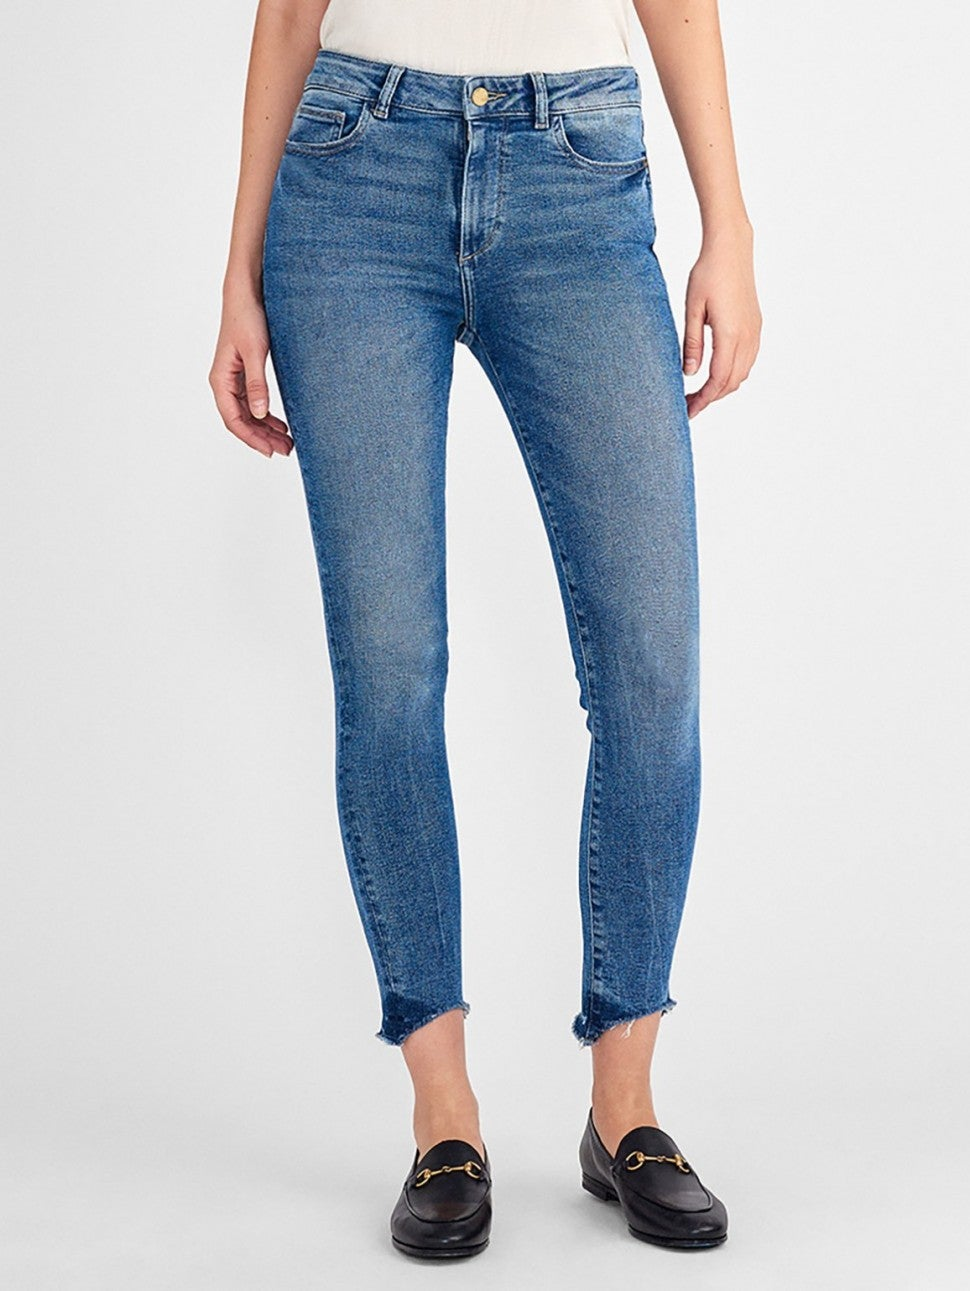 DL1961 high rise skinny jean